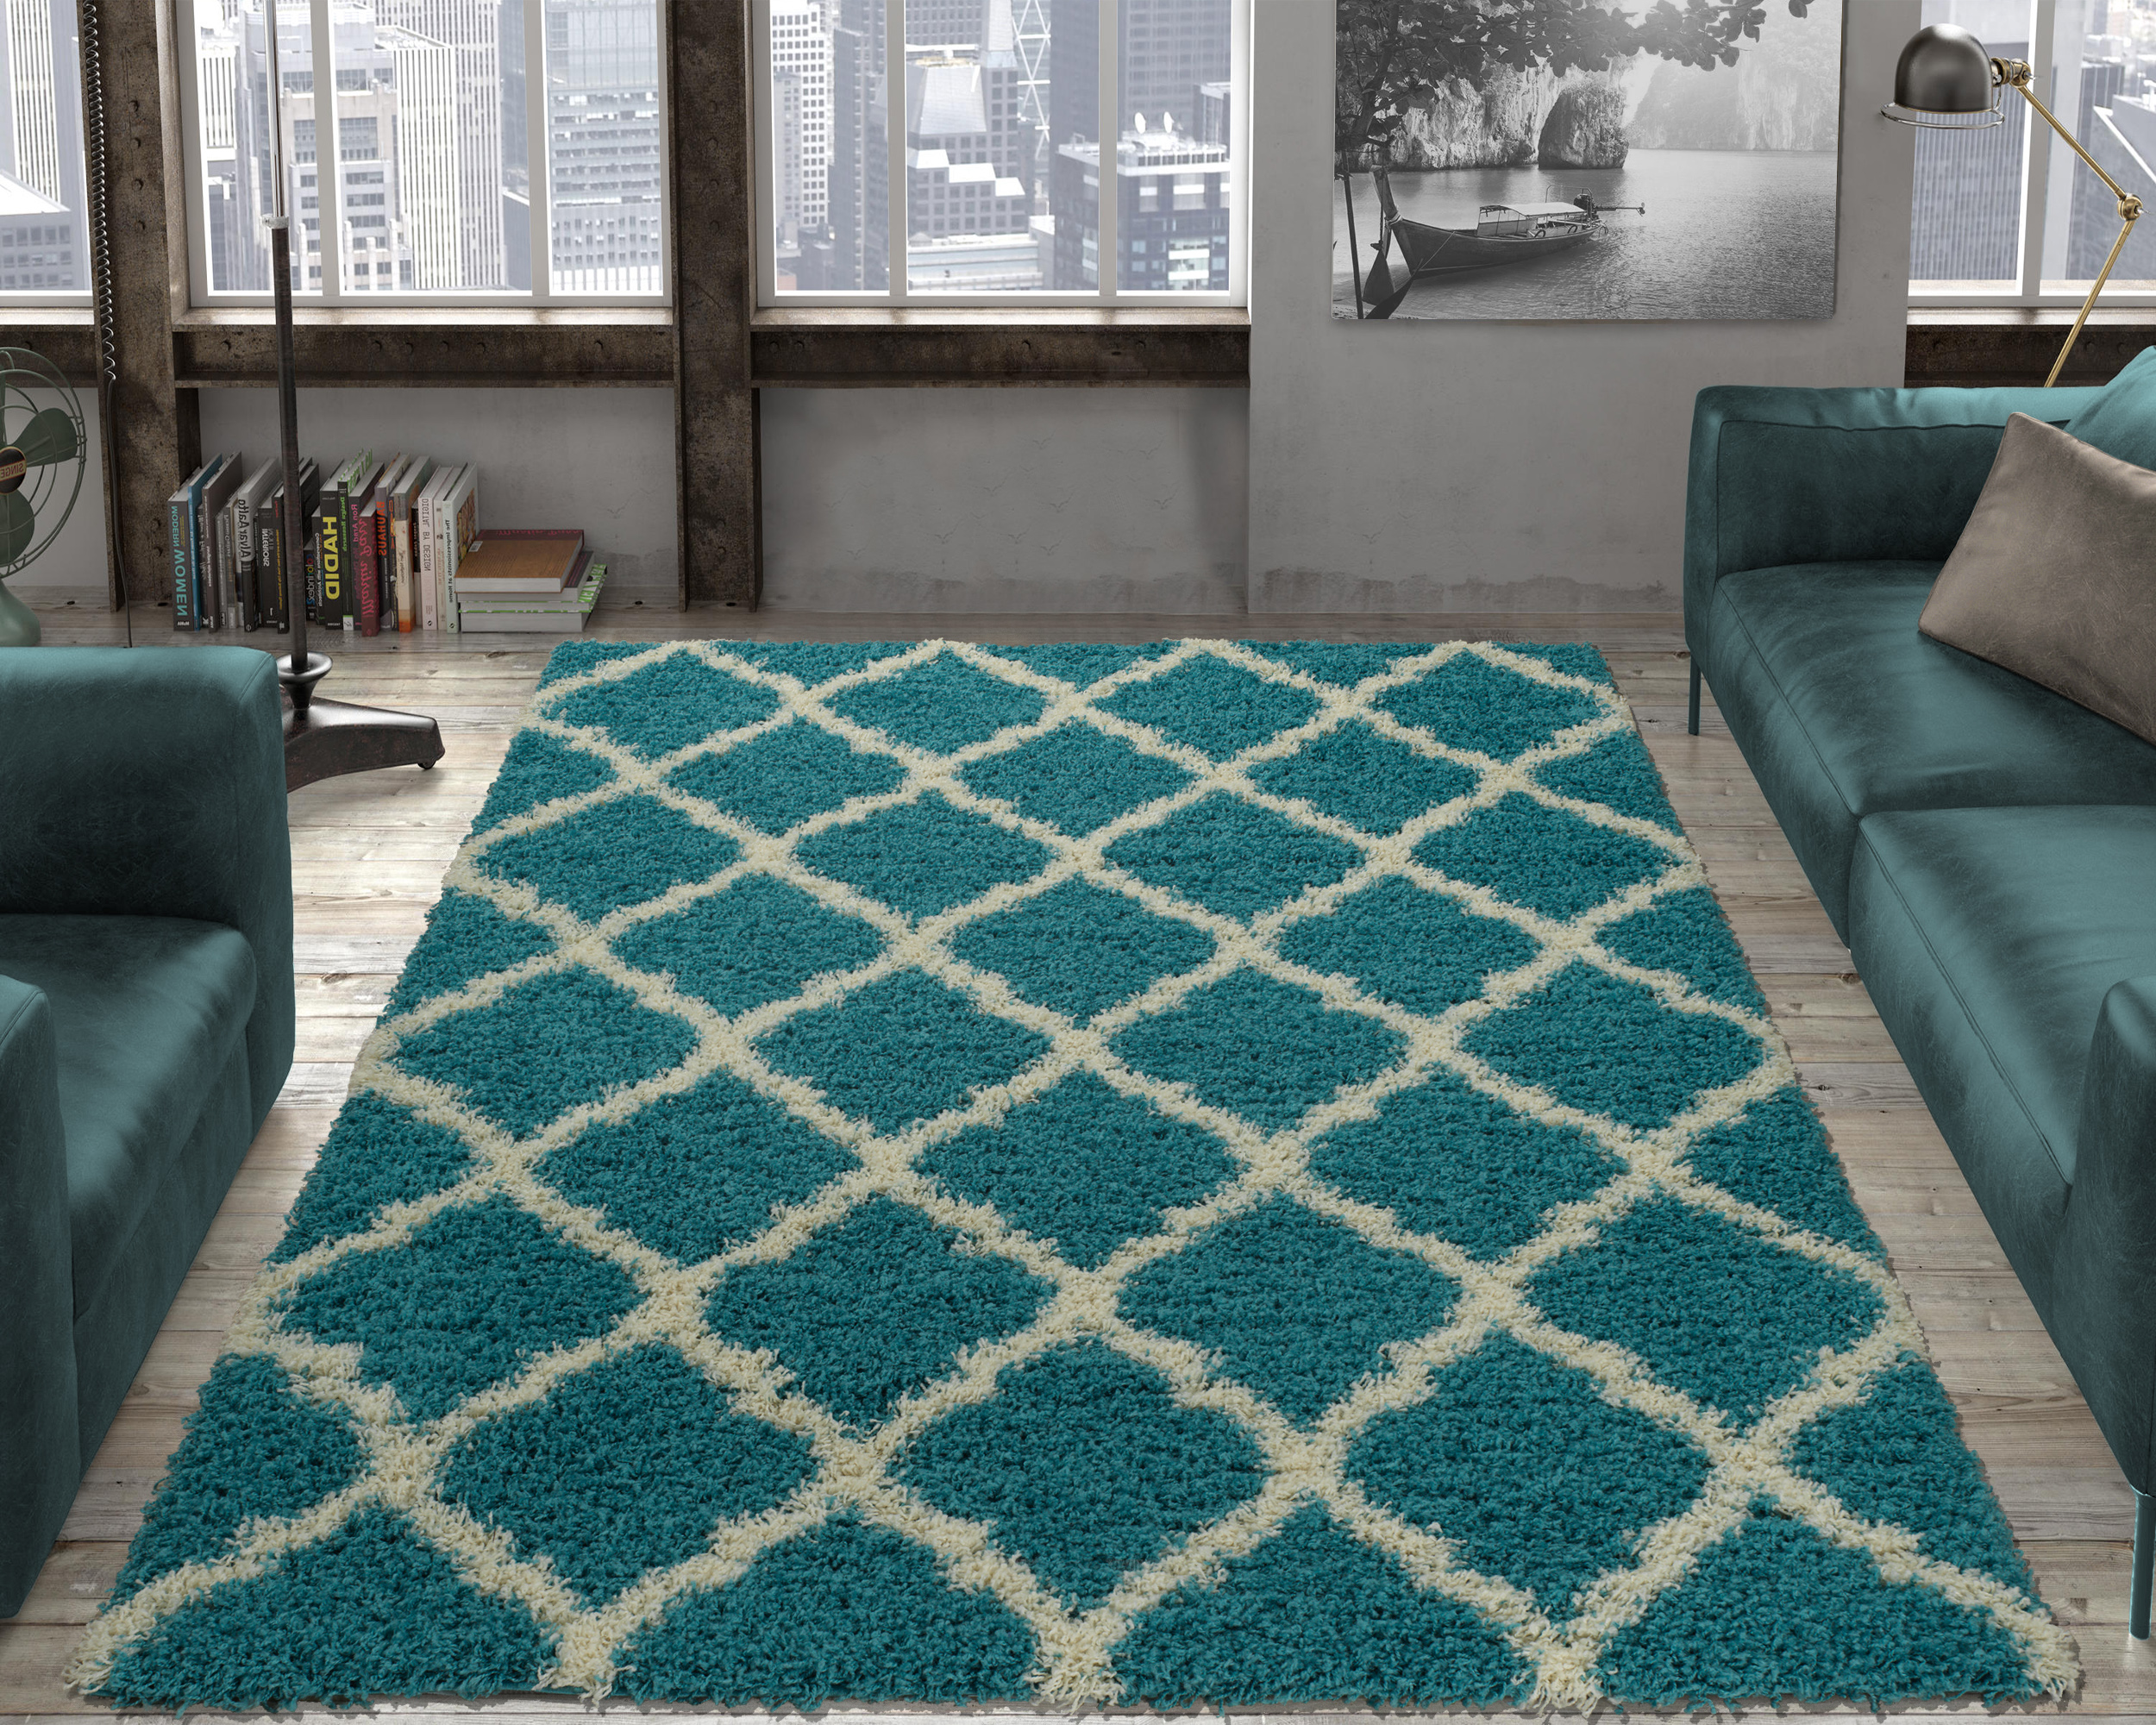 Ottomanson Ultimate Shaggy Contemporary Moroccan Trellis Design Area Rug,  Grey